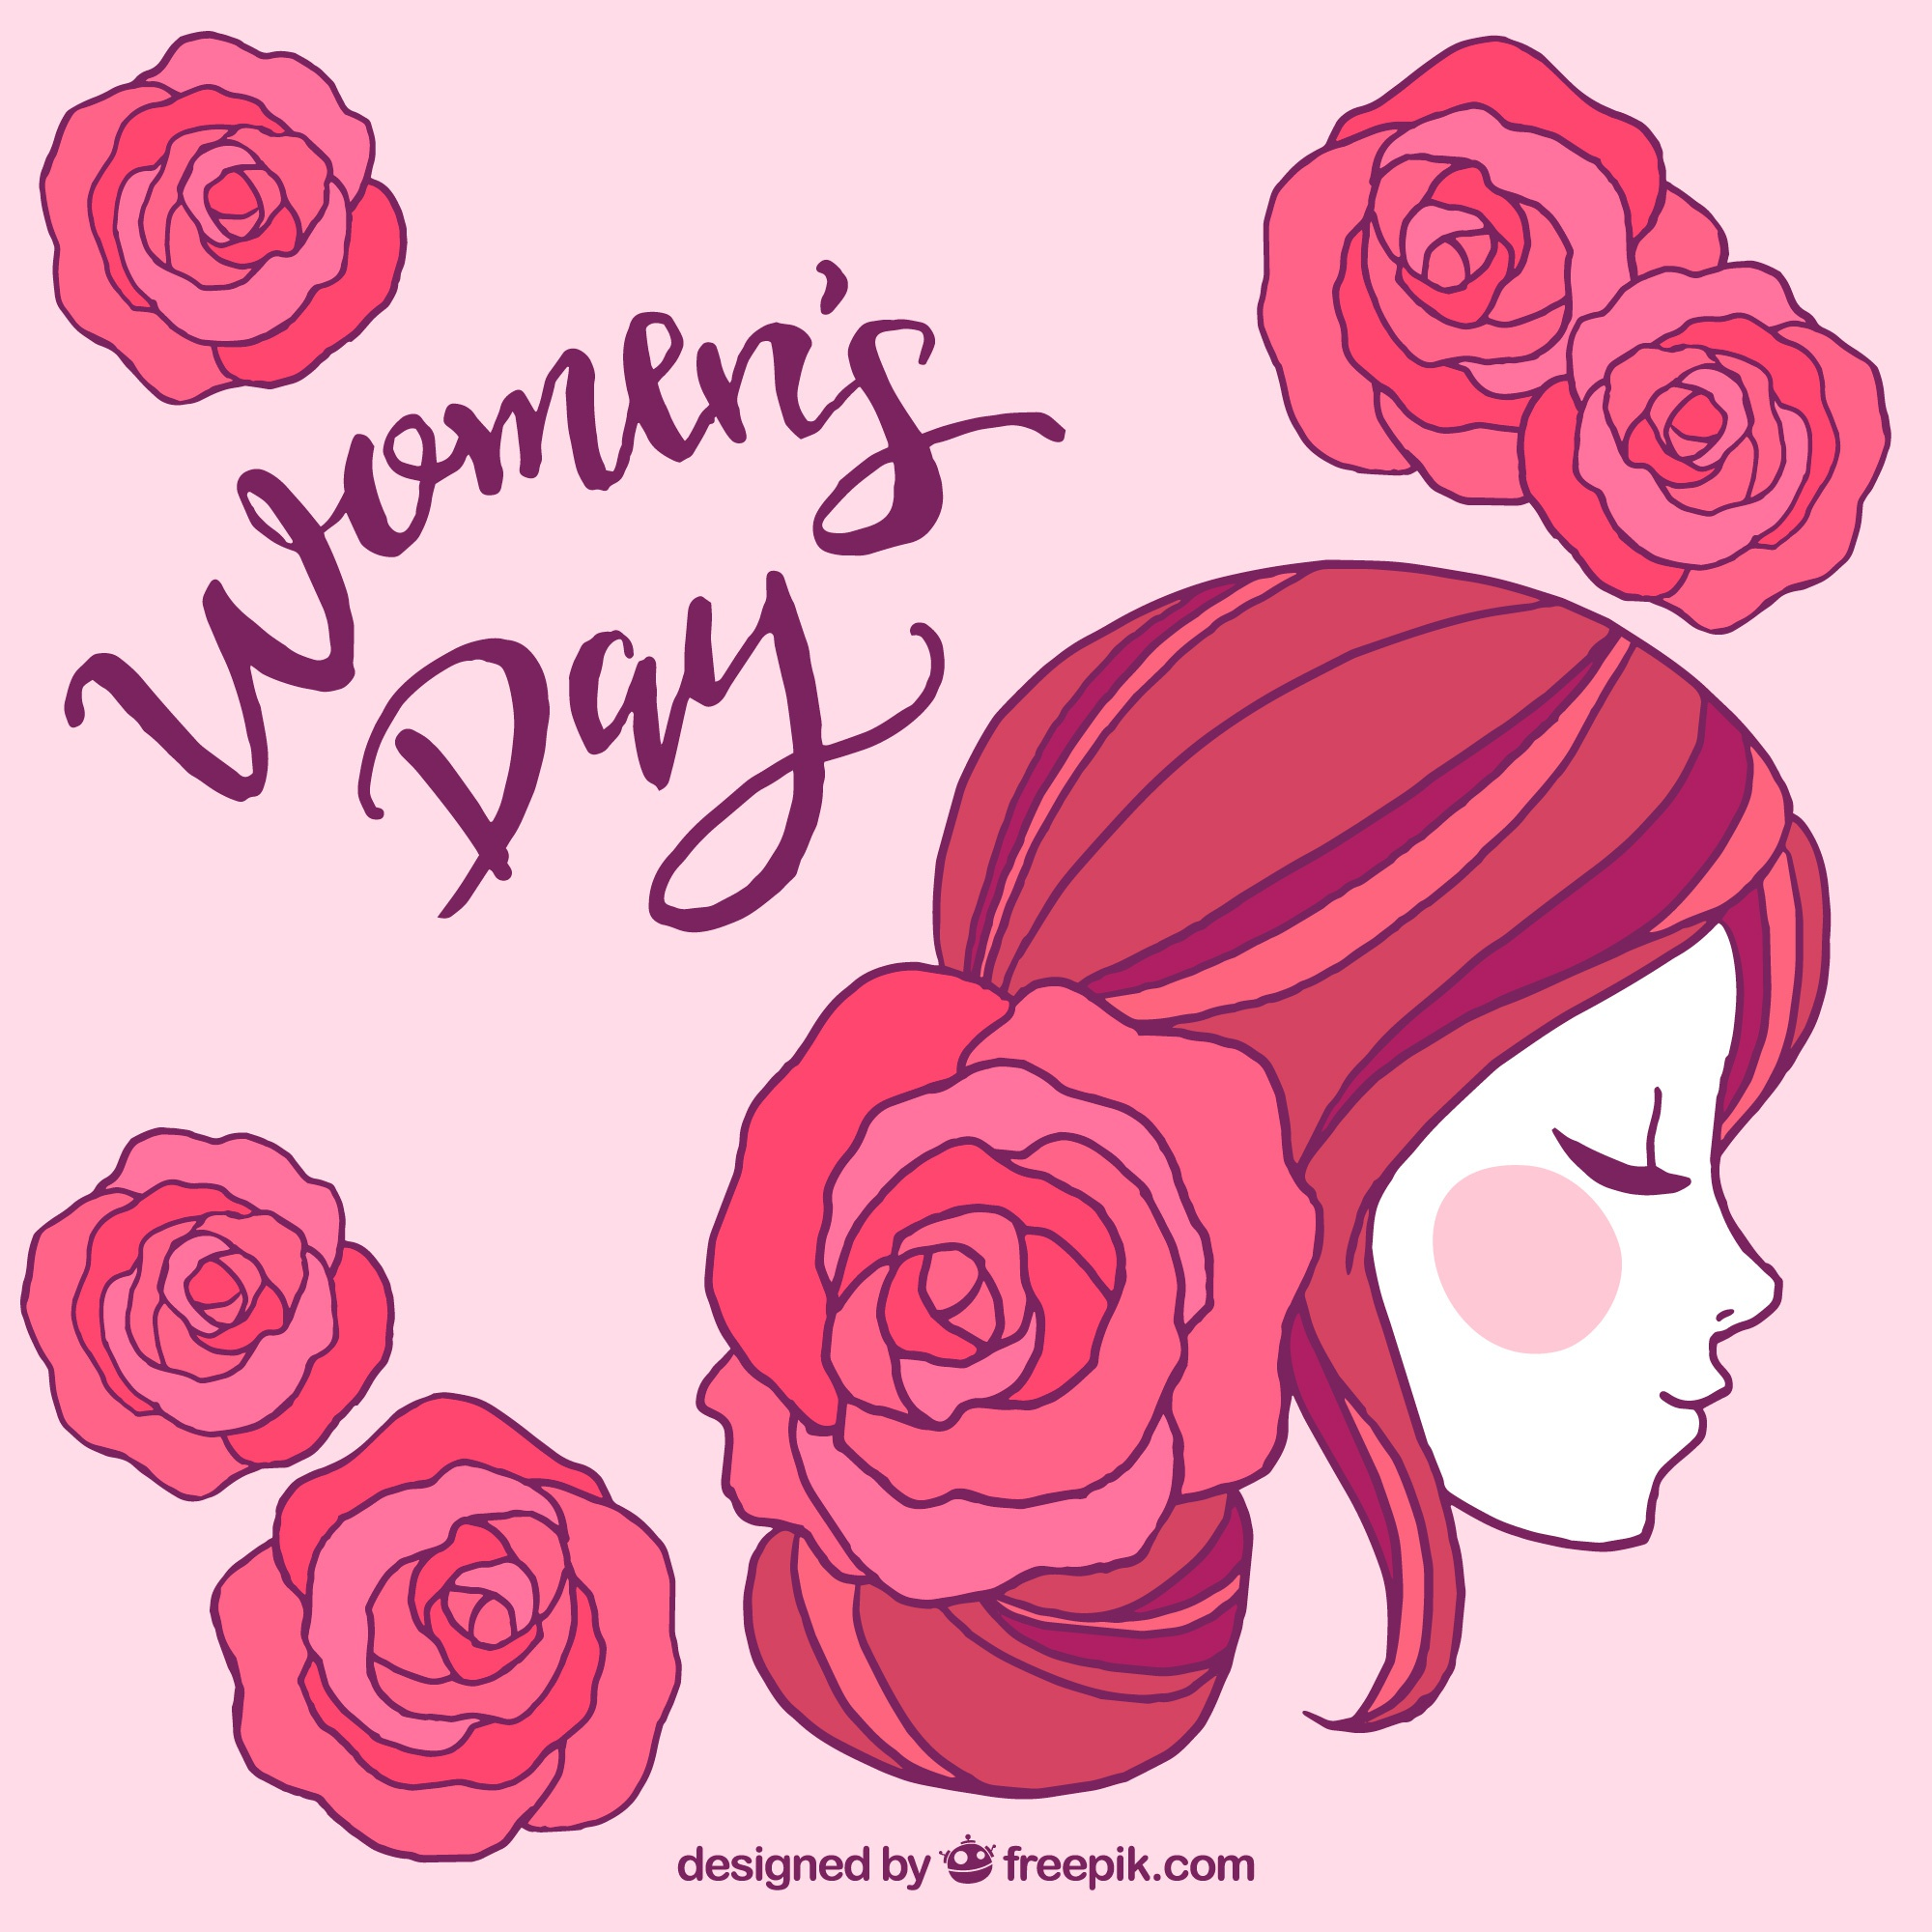 Womans day design with side view of face